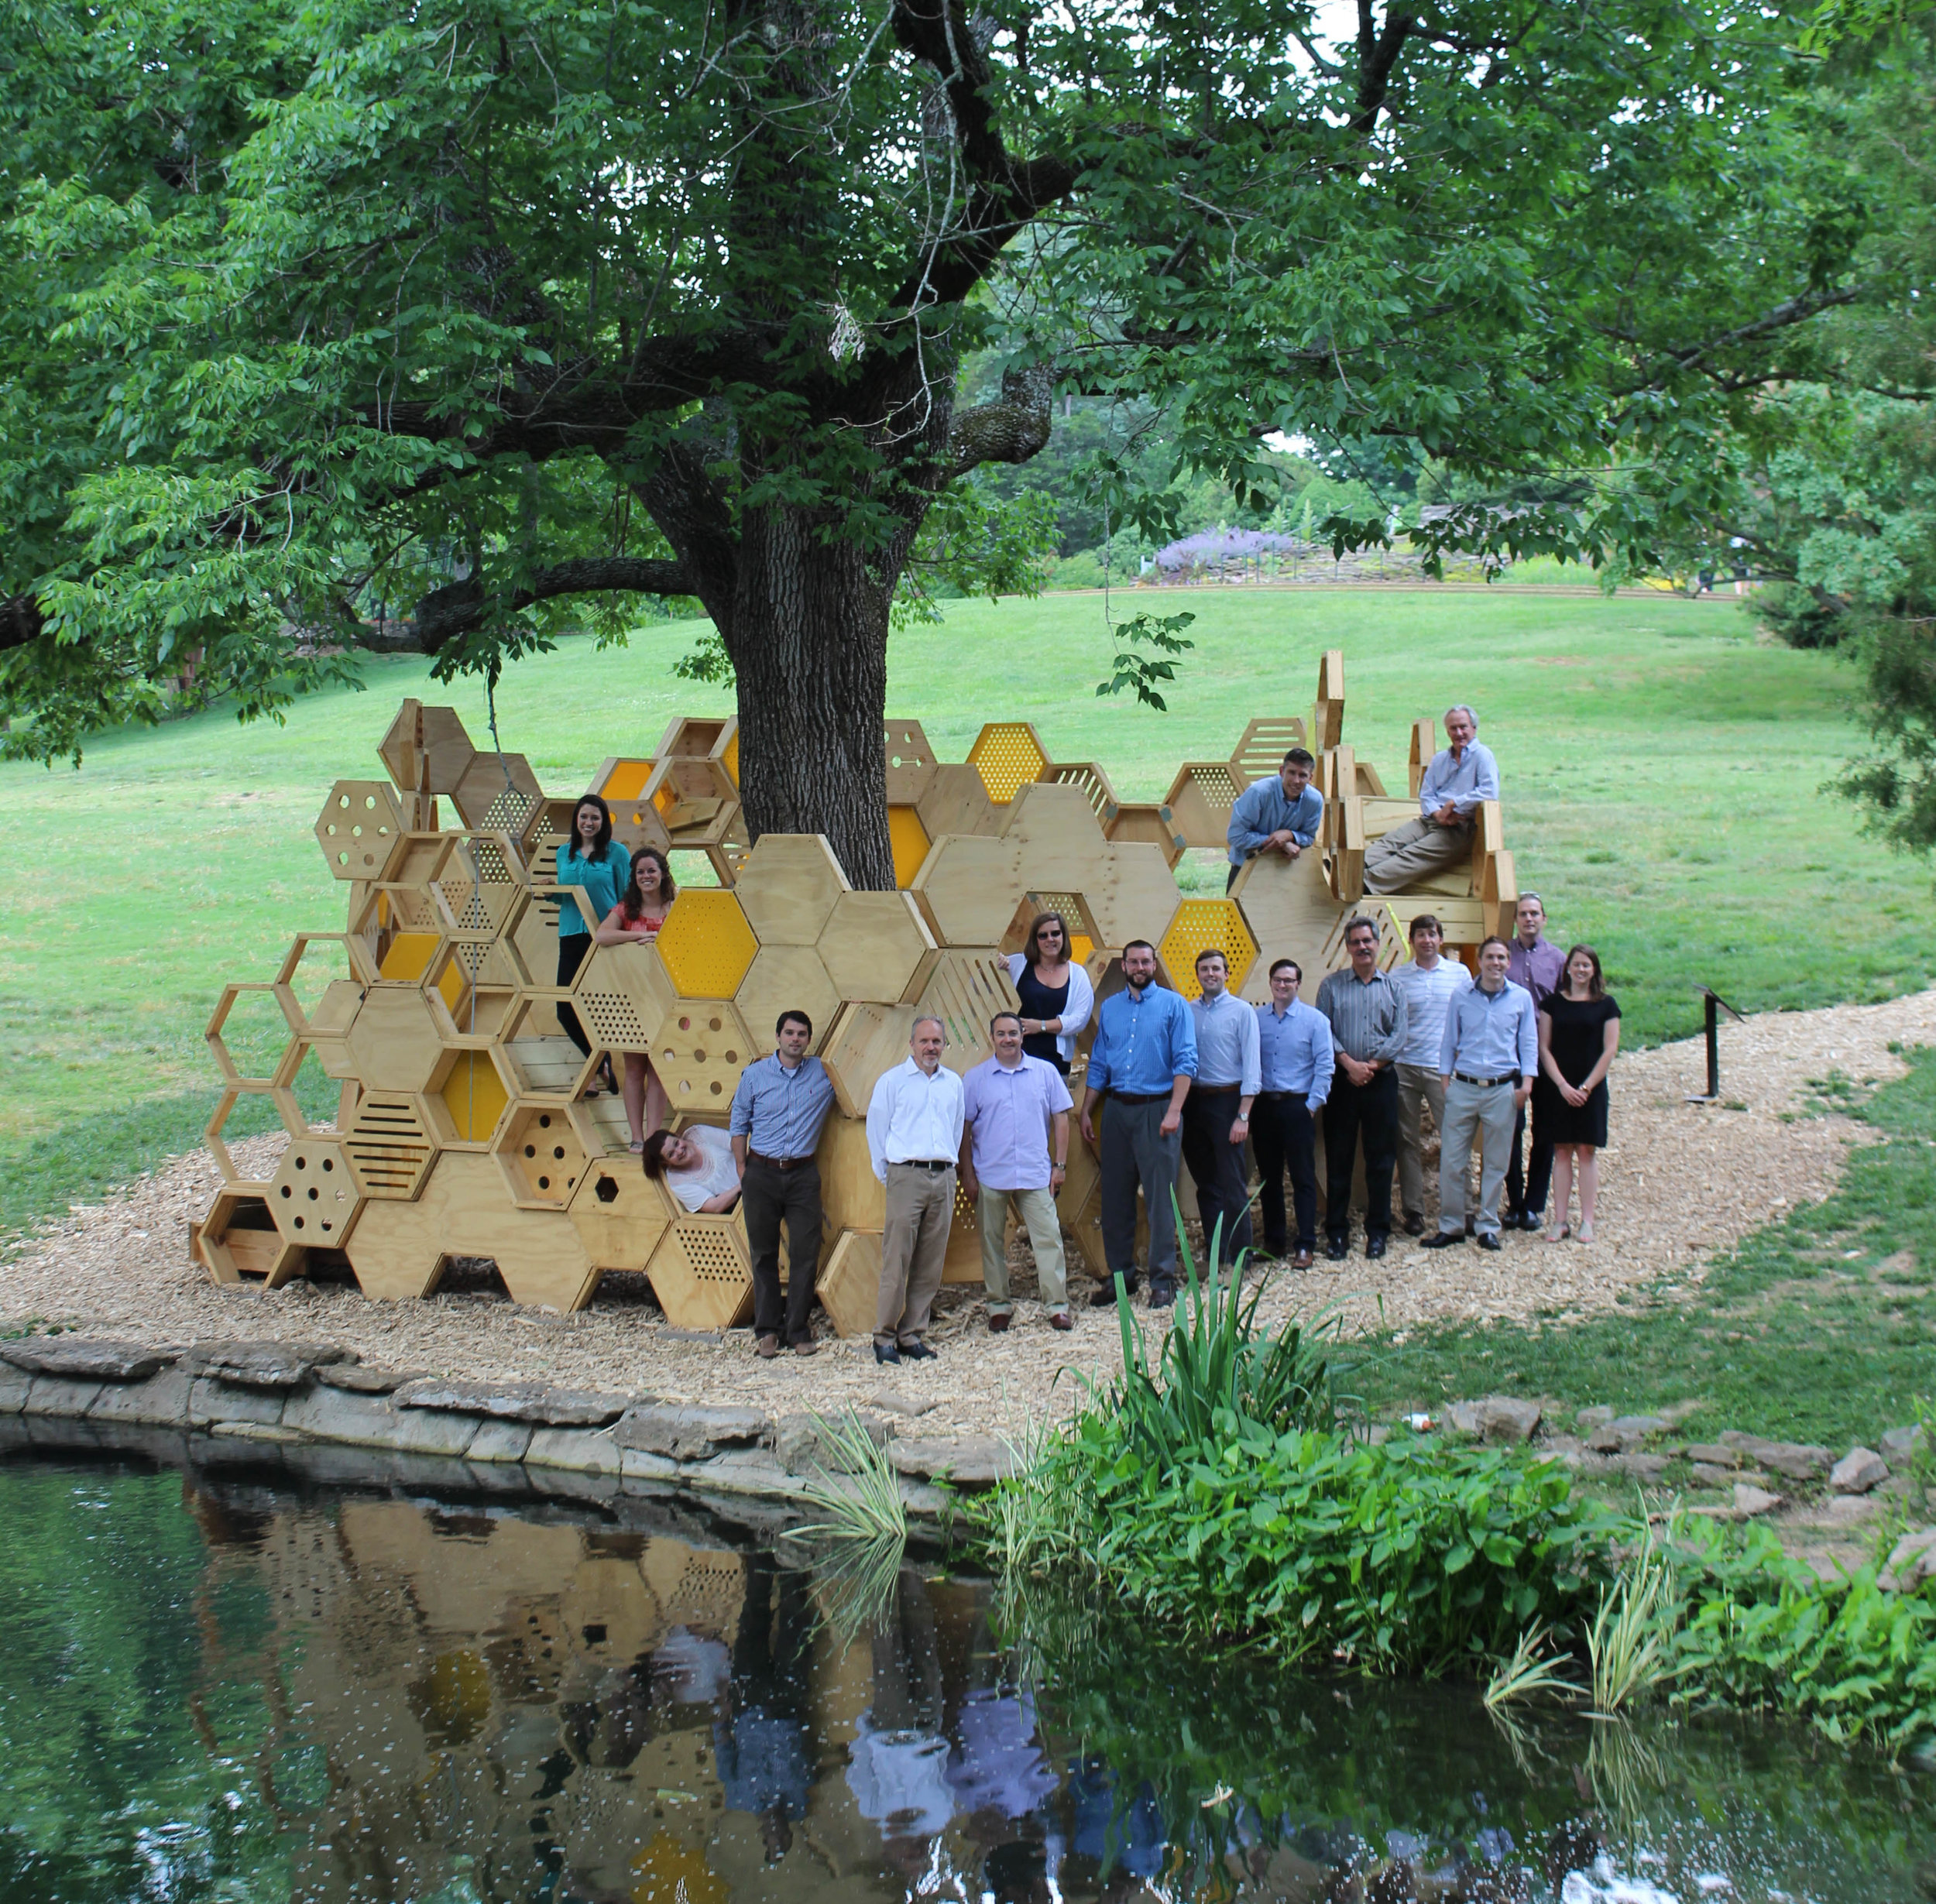 Firm Photo_Hive_28May2014.jpg